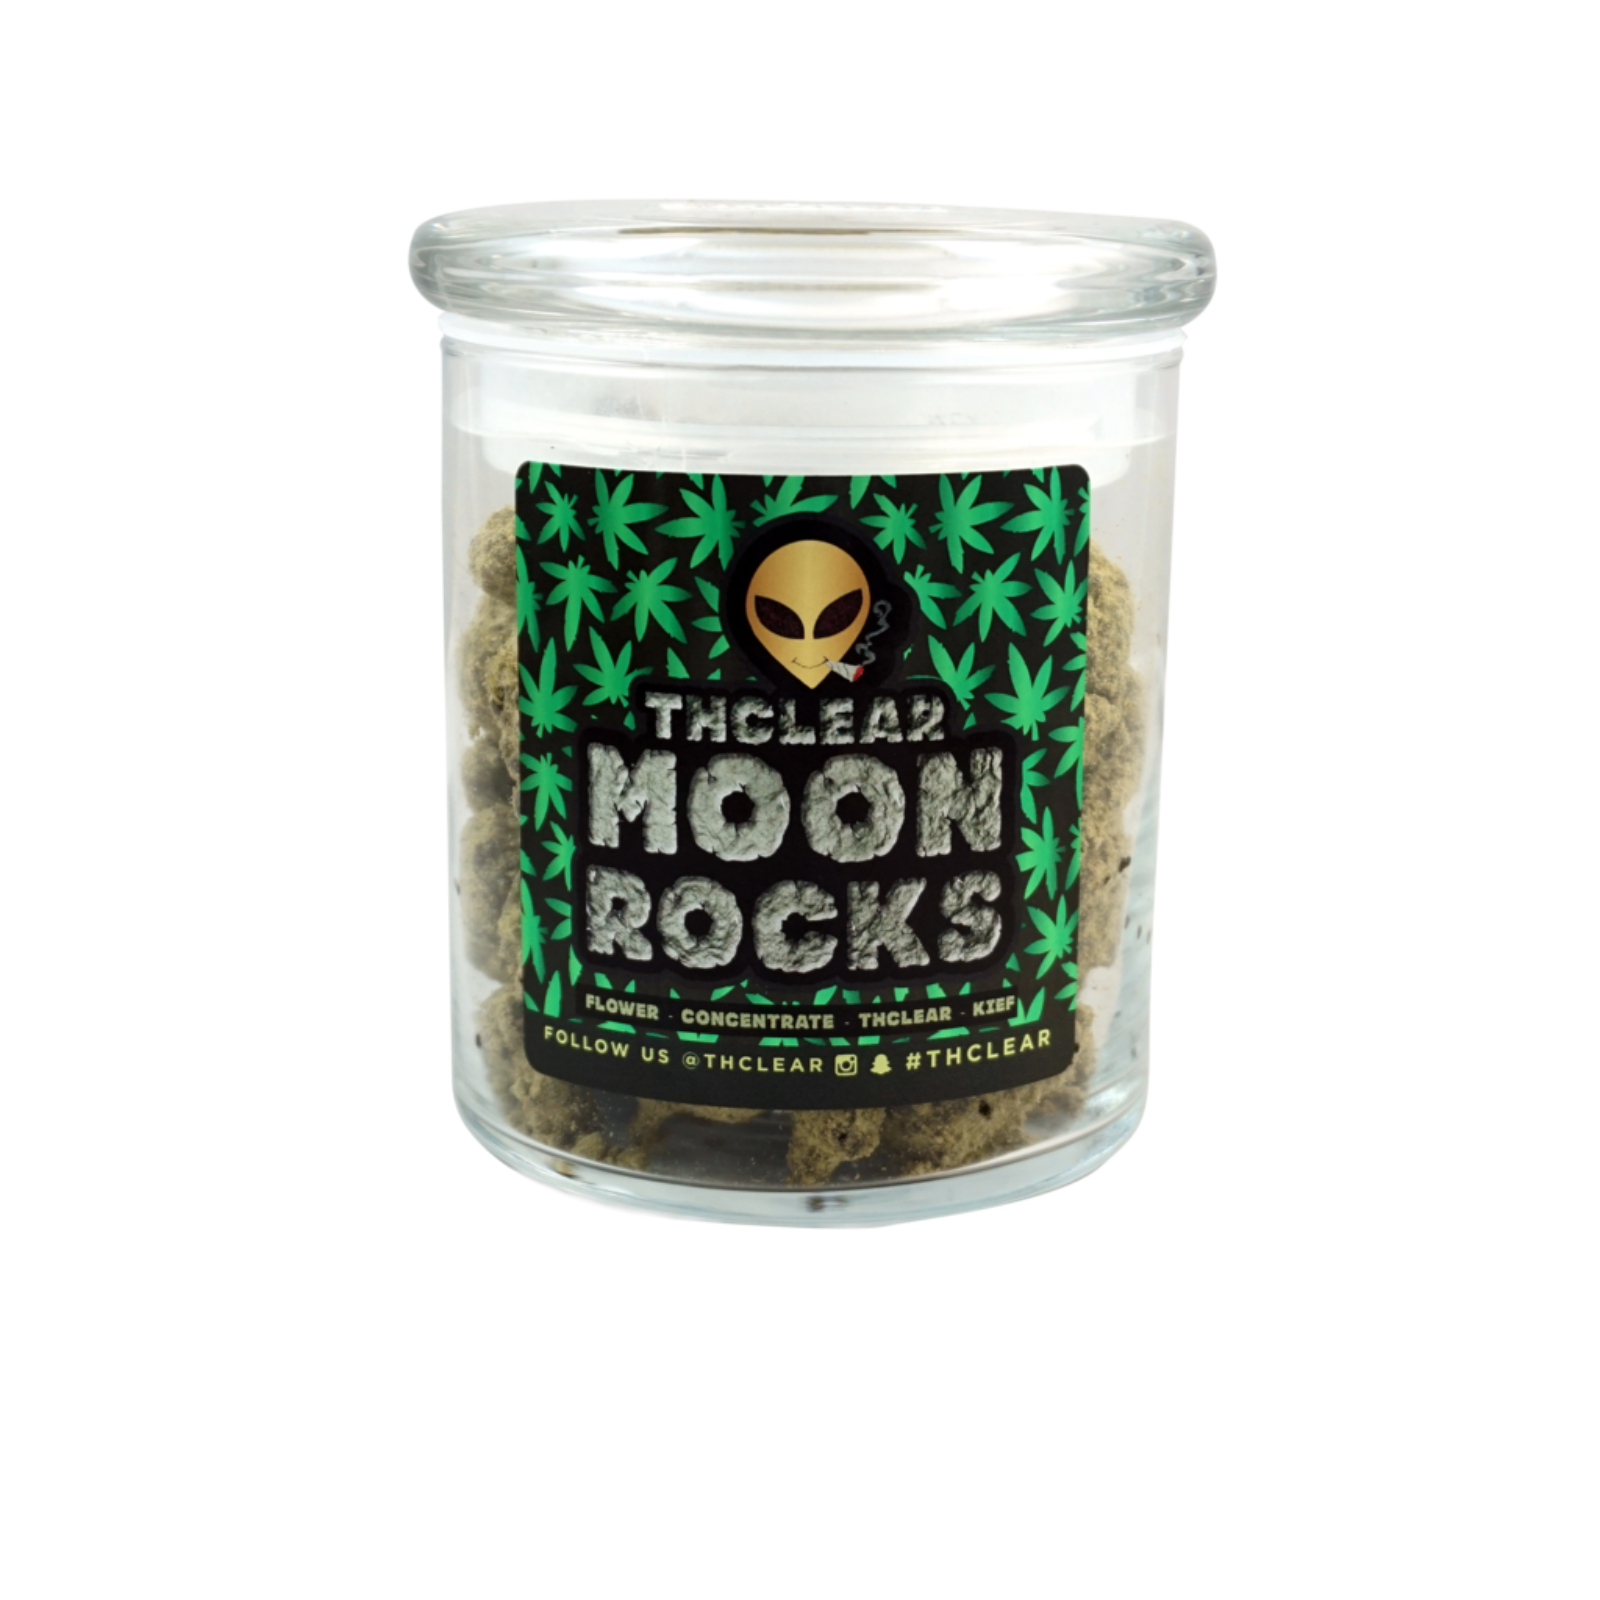 Transparent rocks moon. Strawberry by thclear information